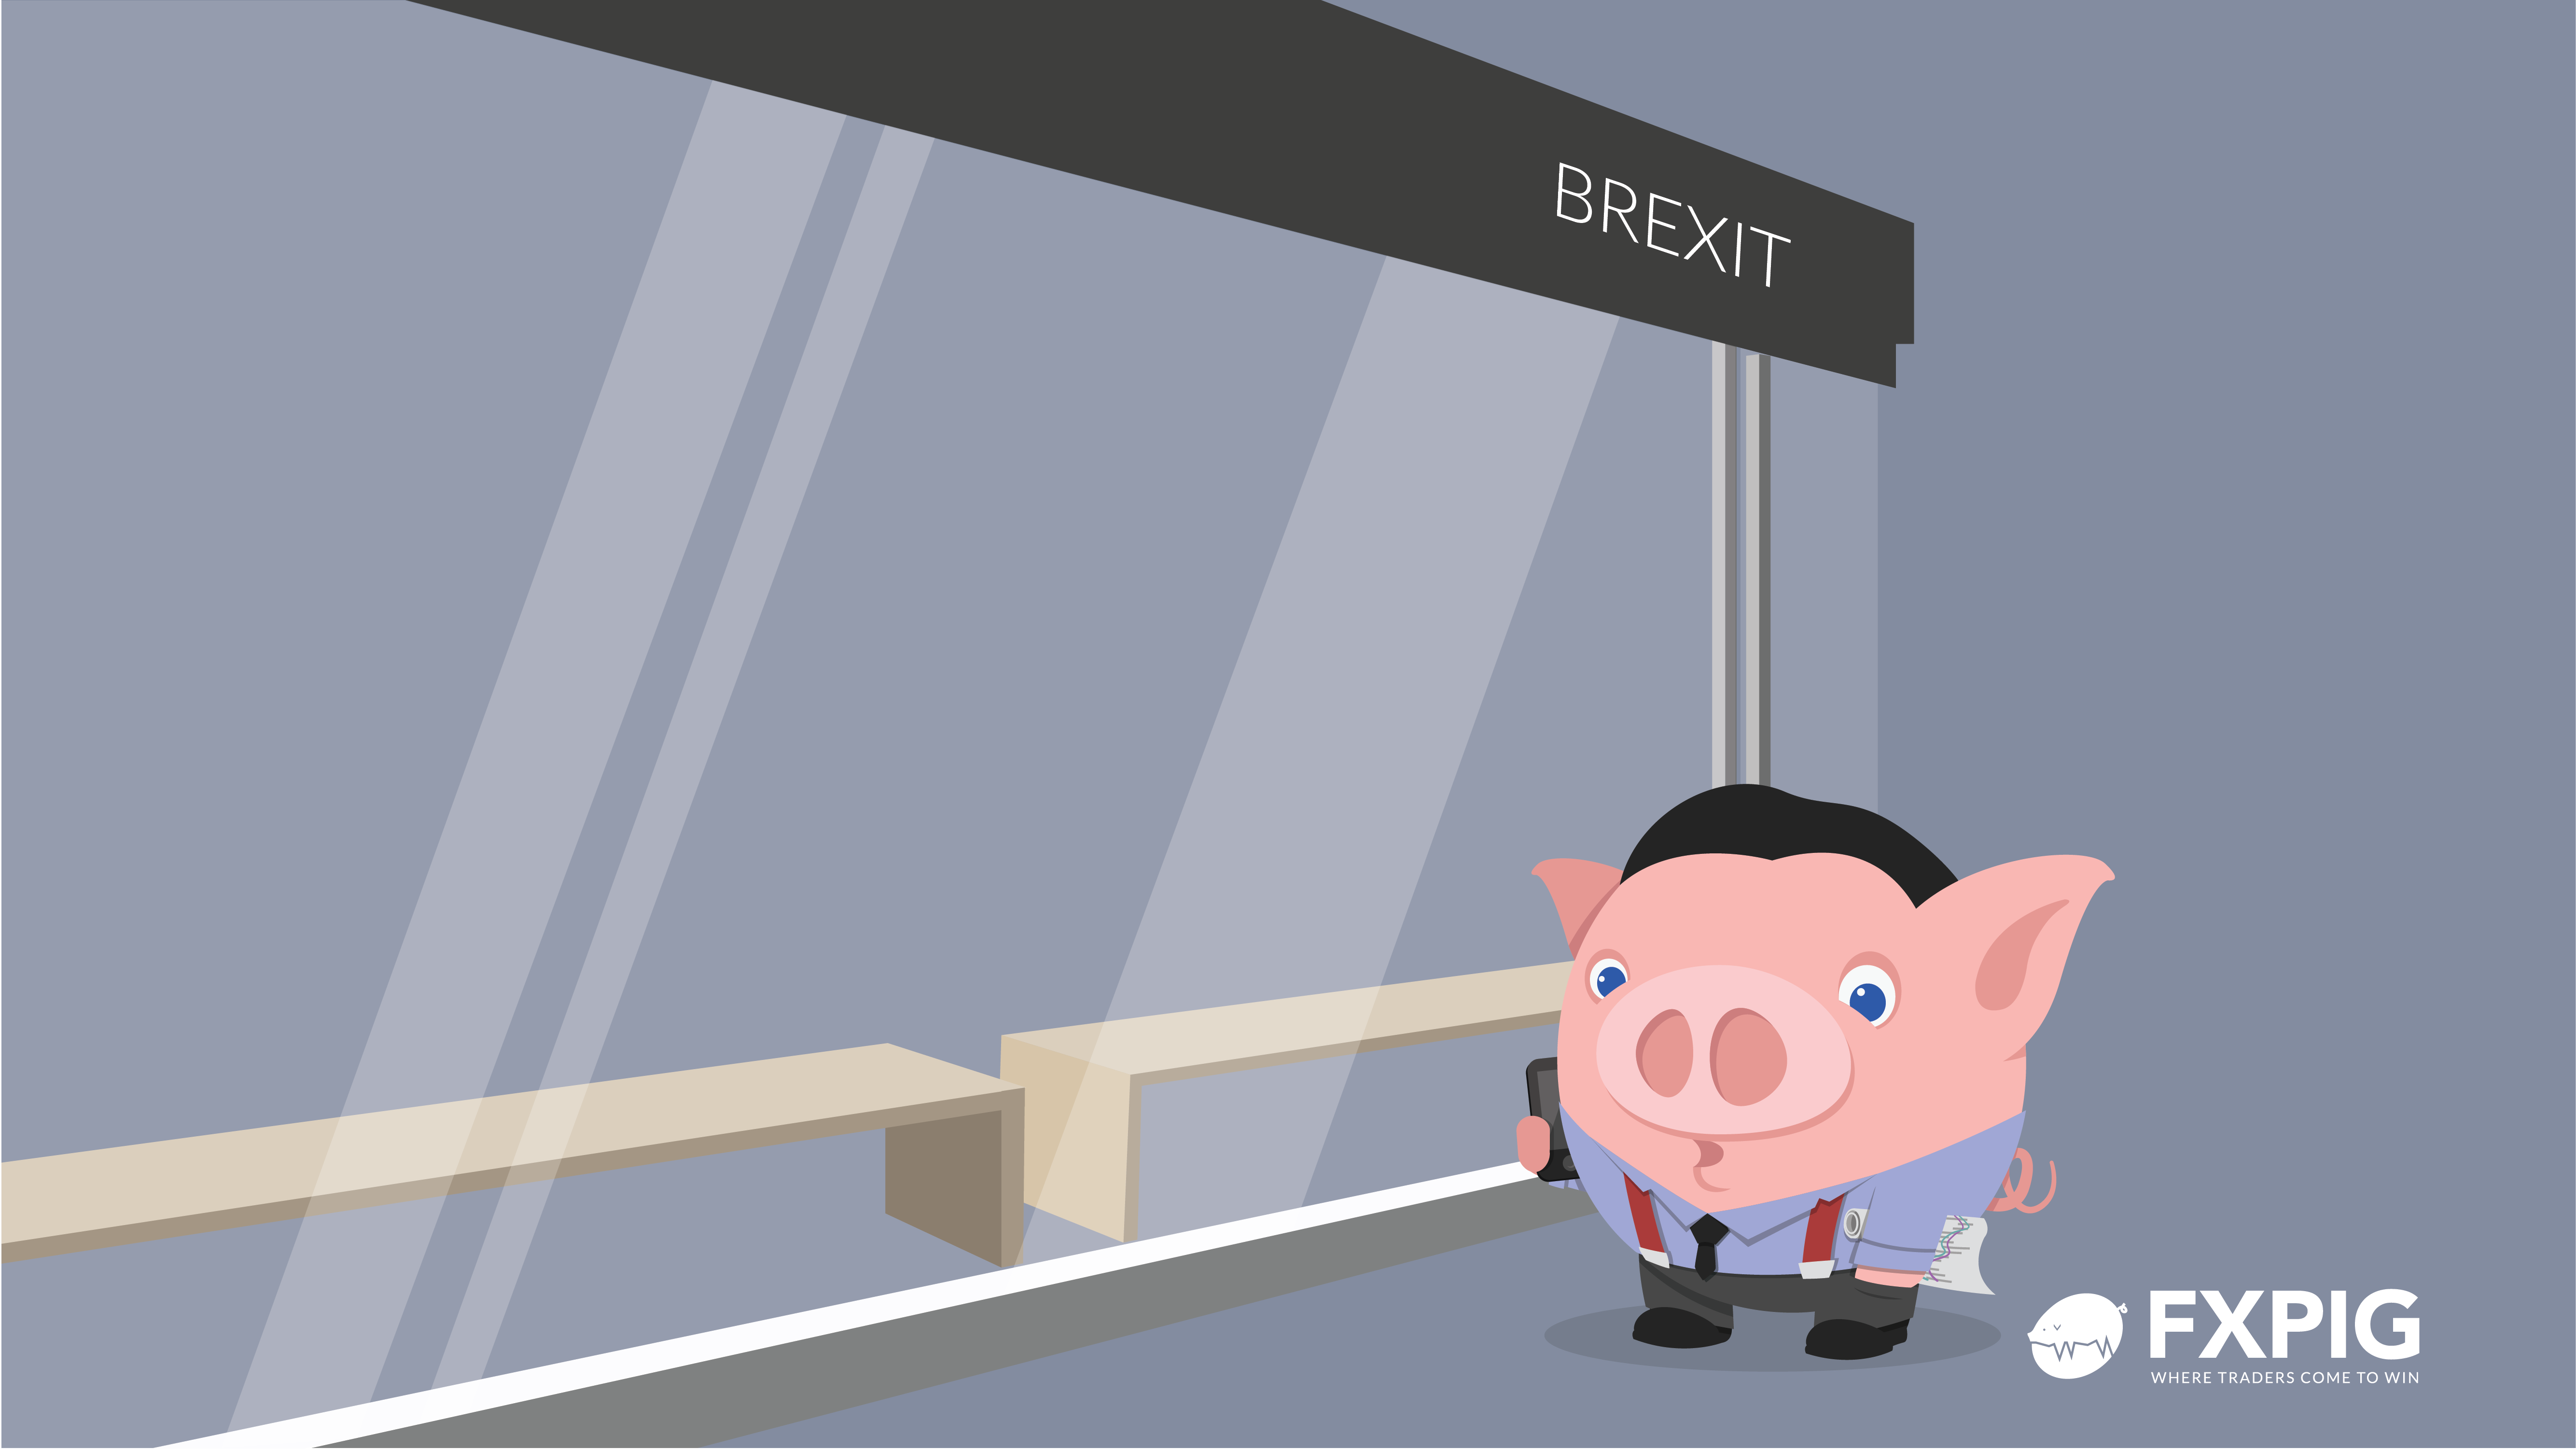 FOREX_Brexit-worries-mount-extending-the-fall-of-sterling_FXPIG